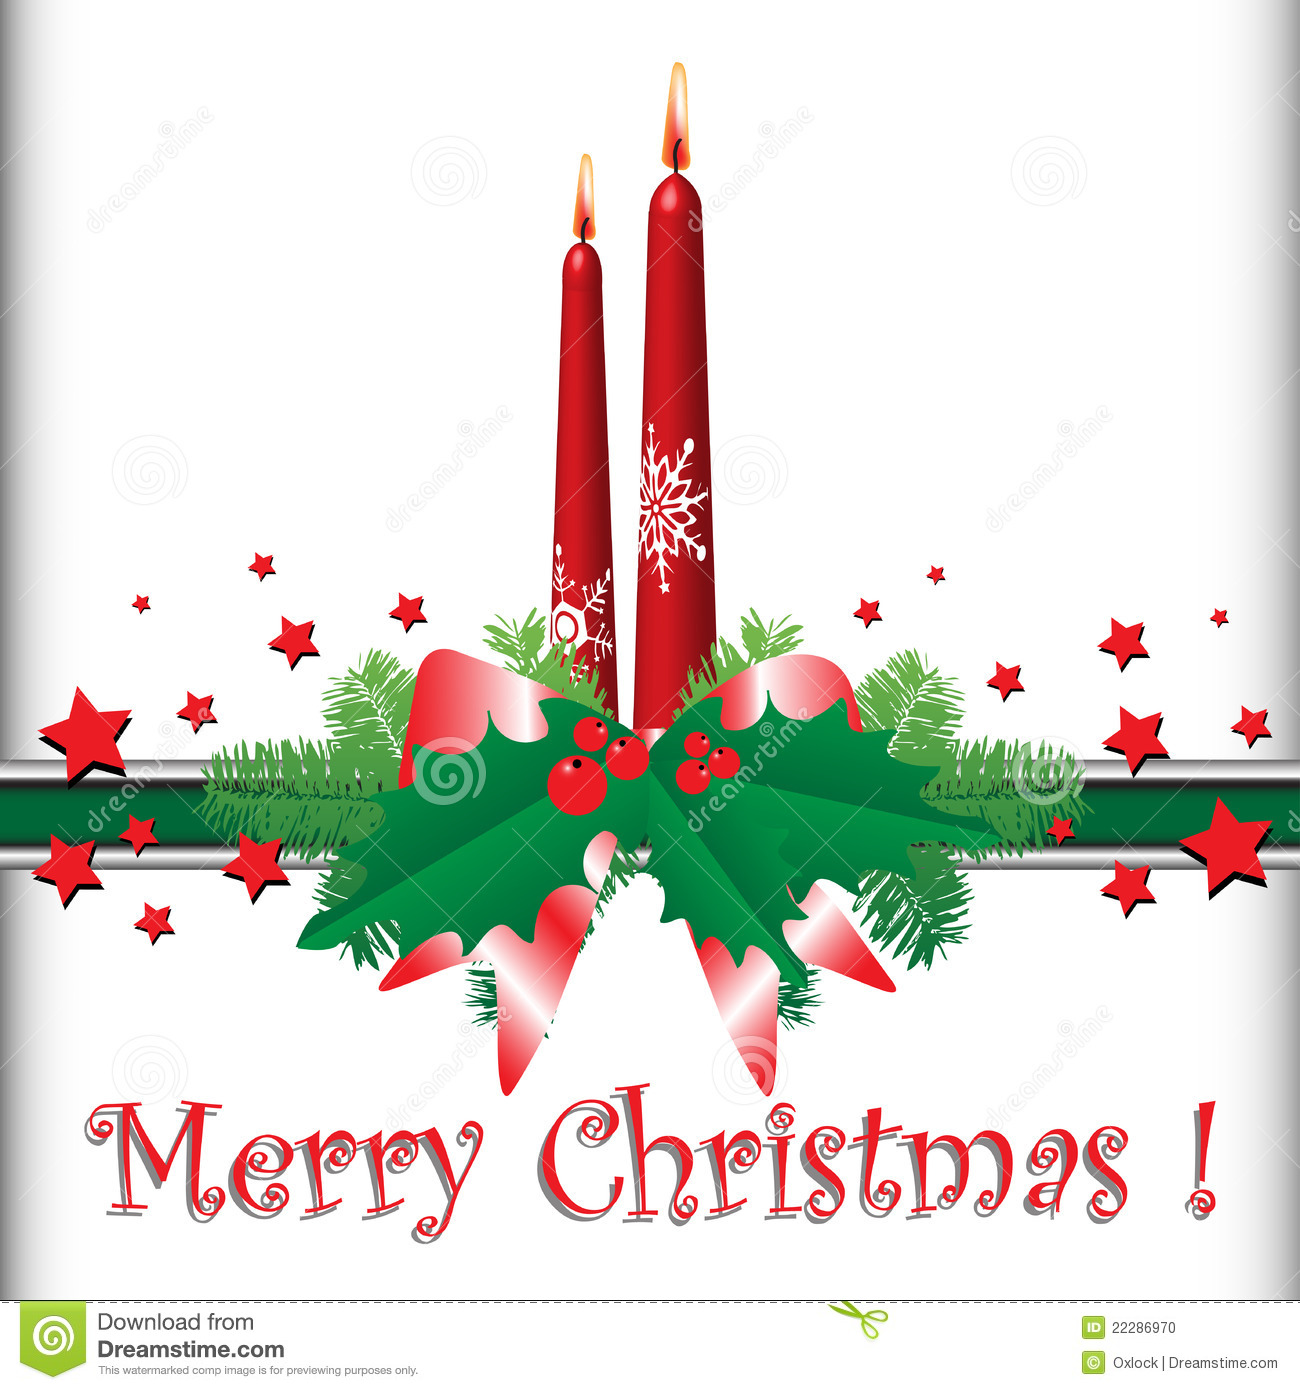 Go Back > Images For > Christmas Candle Clipart